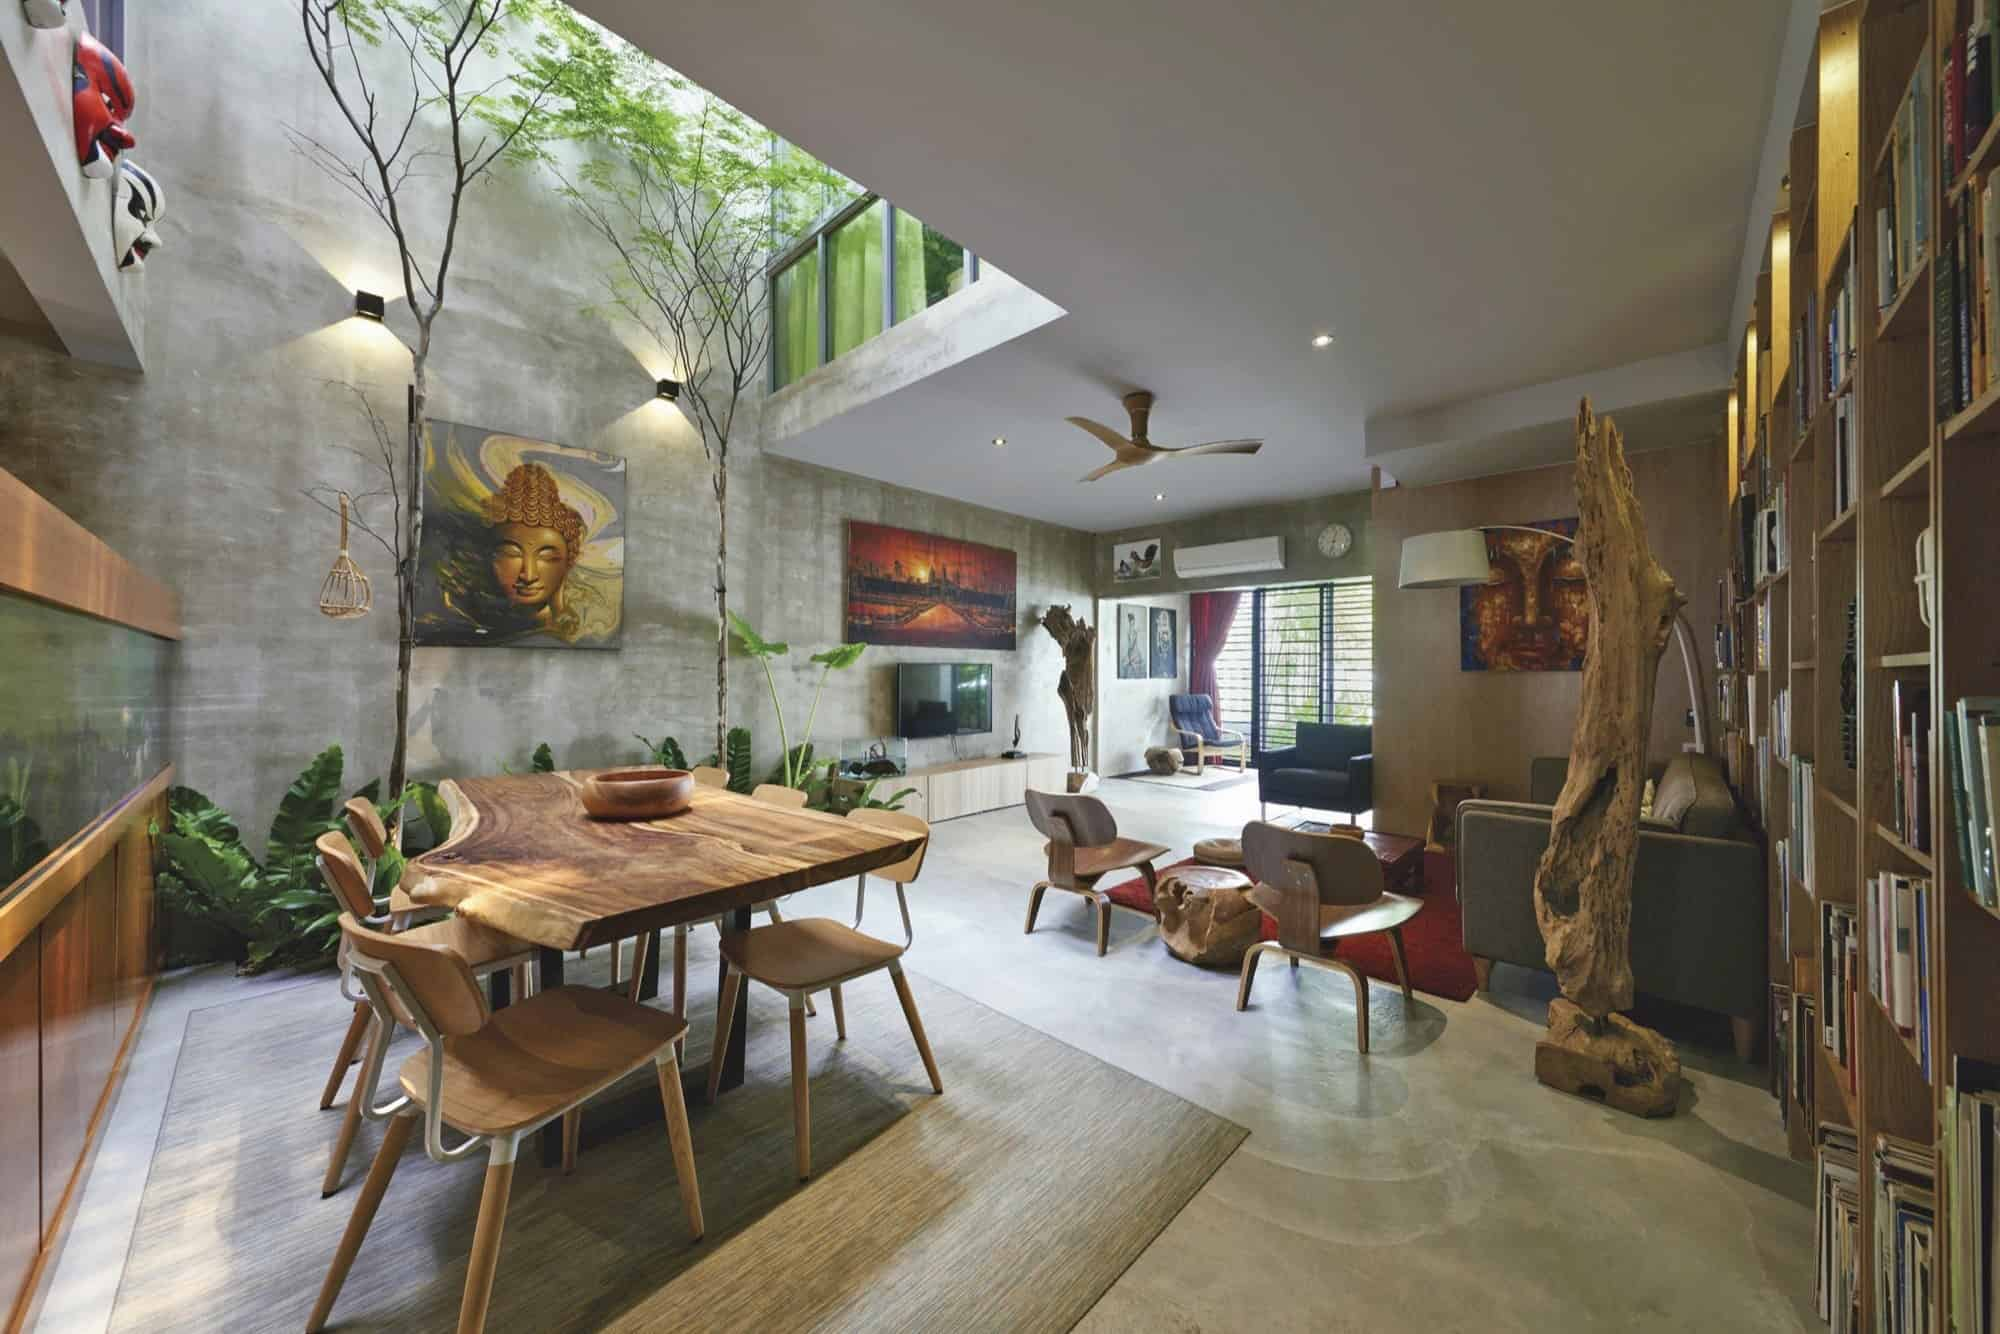 Courtyard Home Designs trees and shrubs create faux courtyard inside house